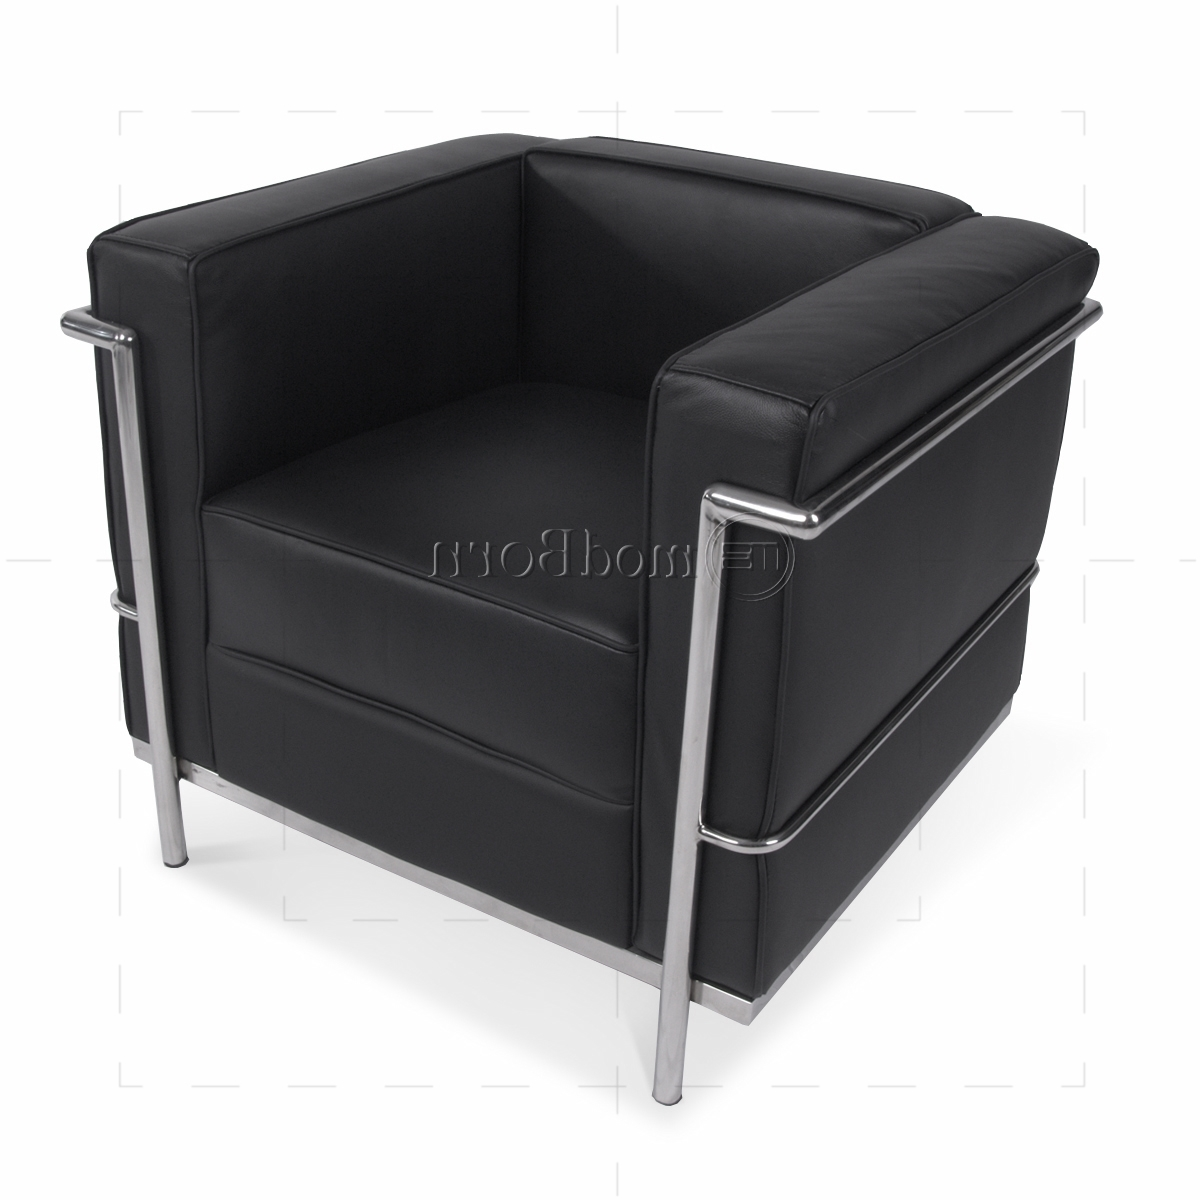 Le Corbusier Style Lc2 Armchair 1 Seater Black Leather – Replica For Fashionable Single Seat Sofa Chairs (View 5 of 20)